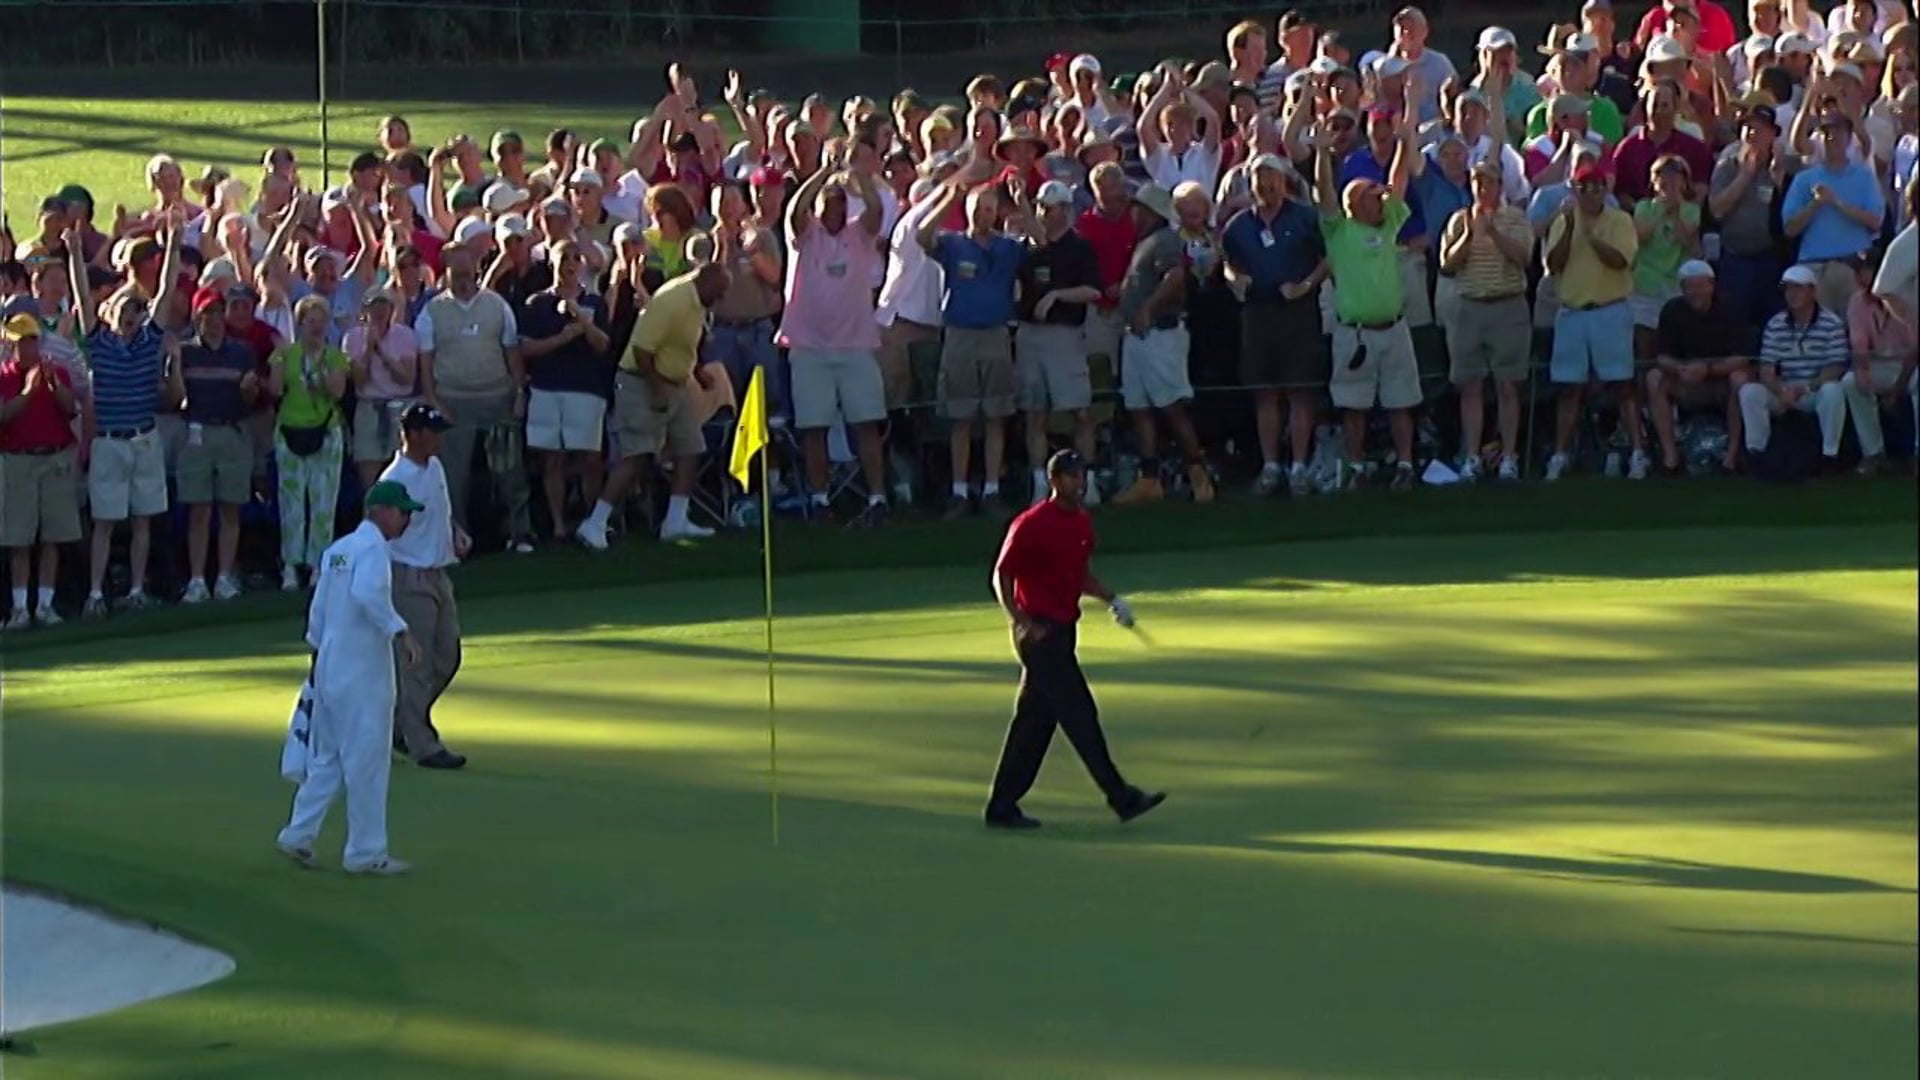 Verne Lundquist at the Masters